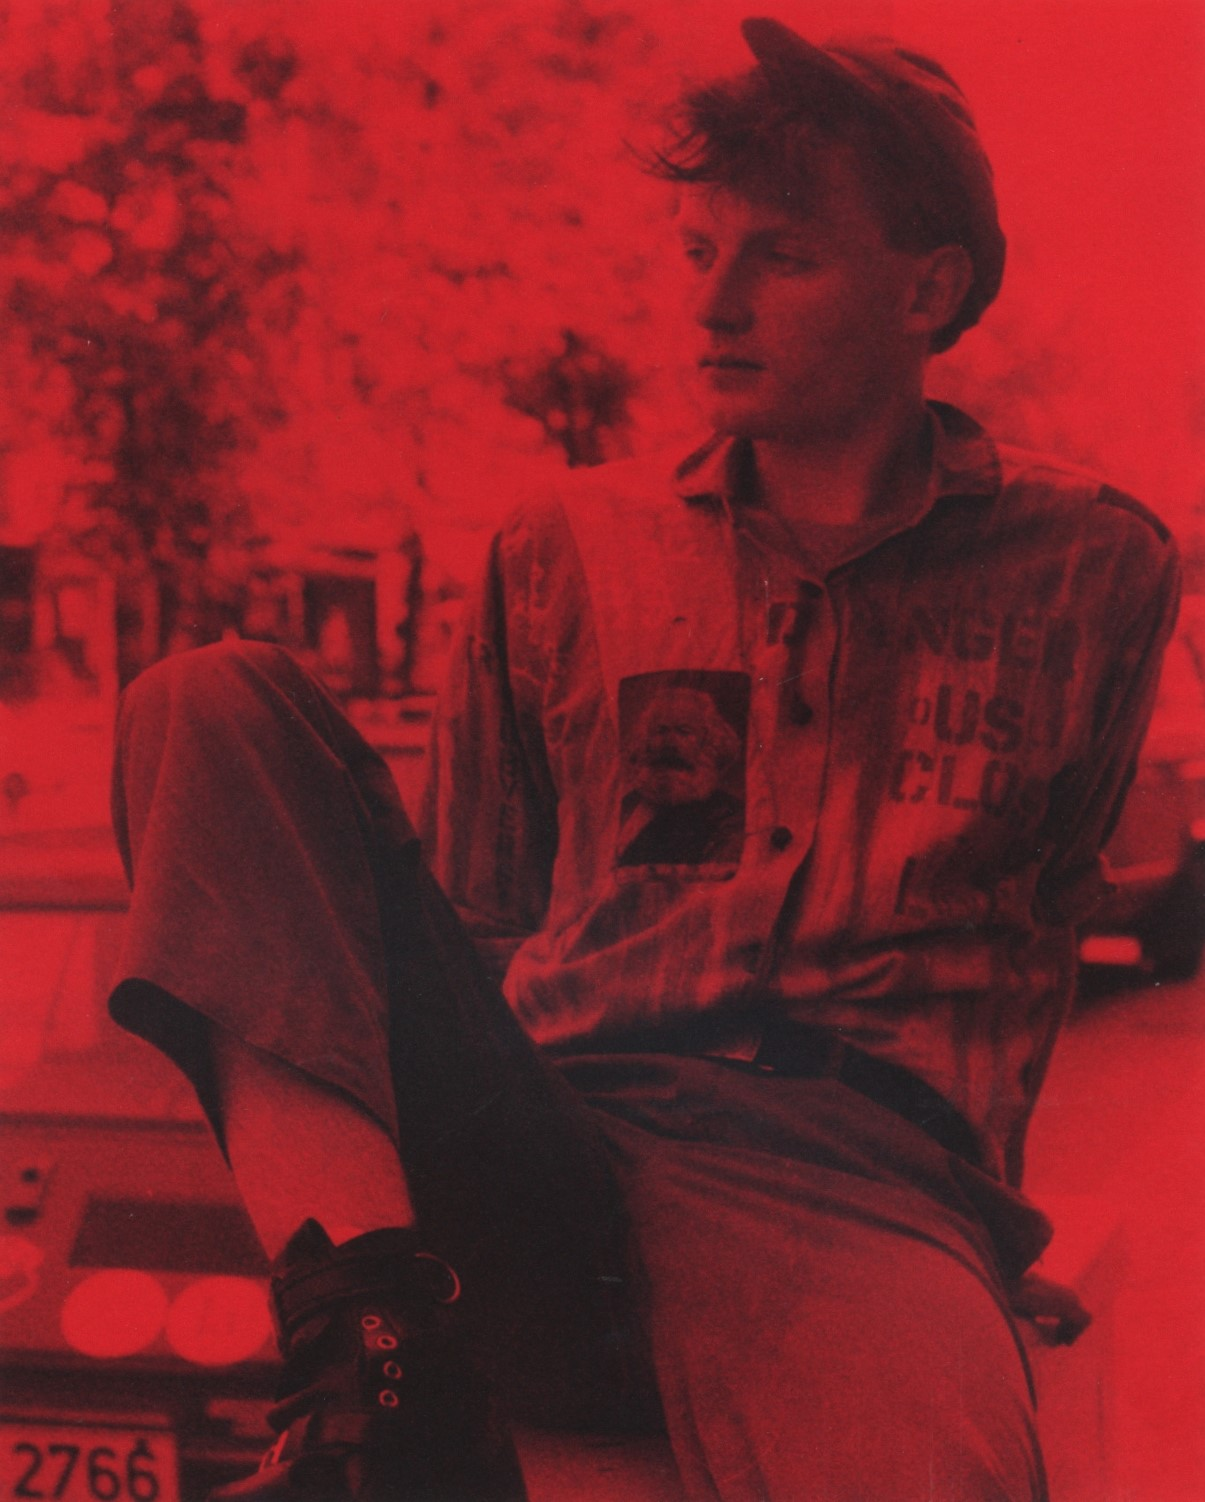 fetisch as a young man in vivienne westwood clothes berlin ca 1983 032c 24th issue berlin summer 2013